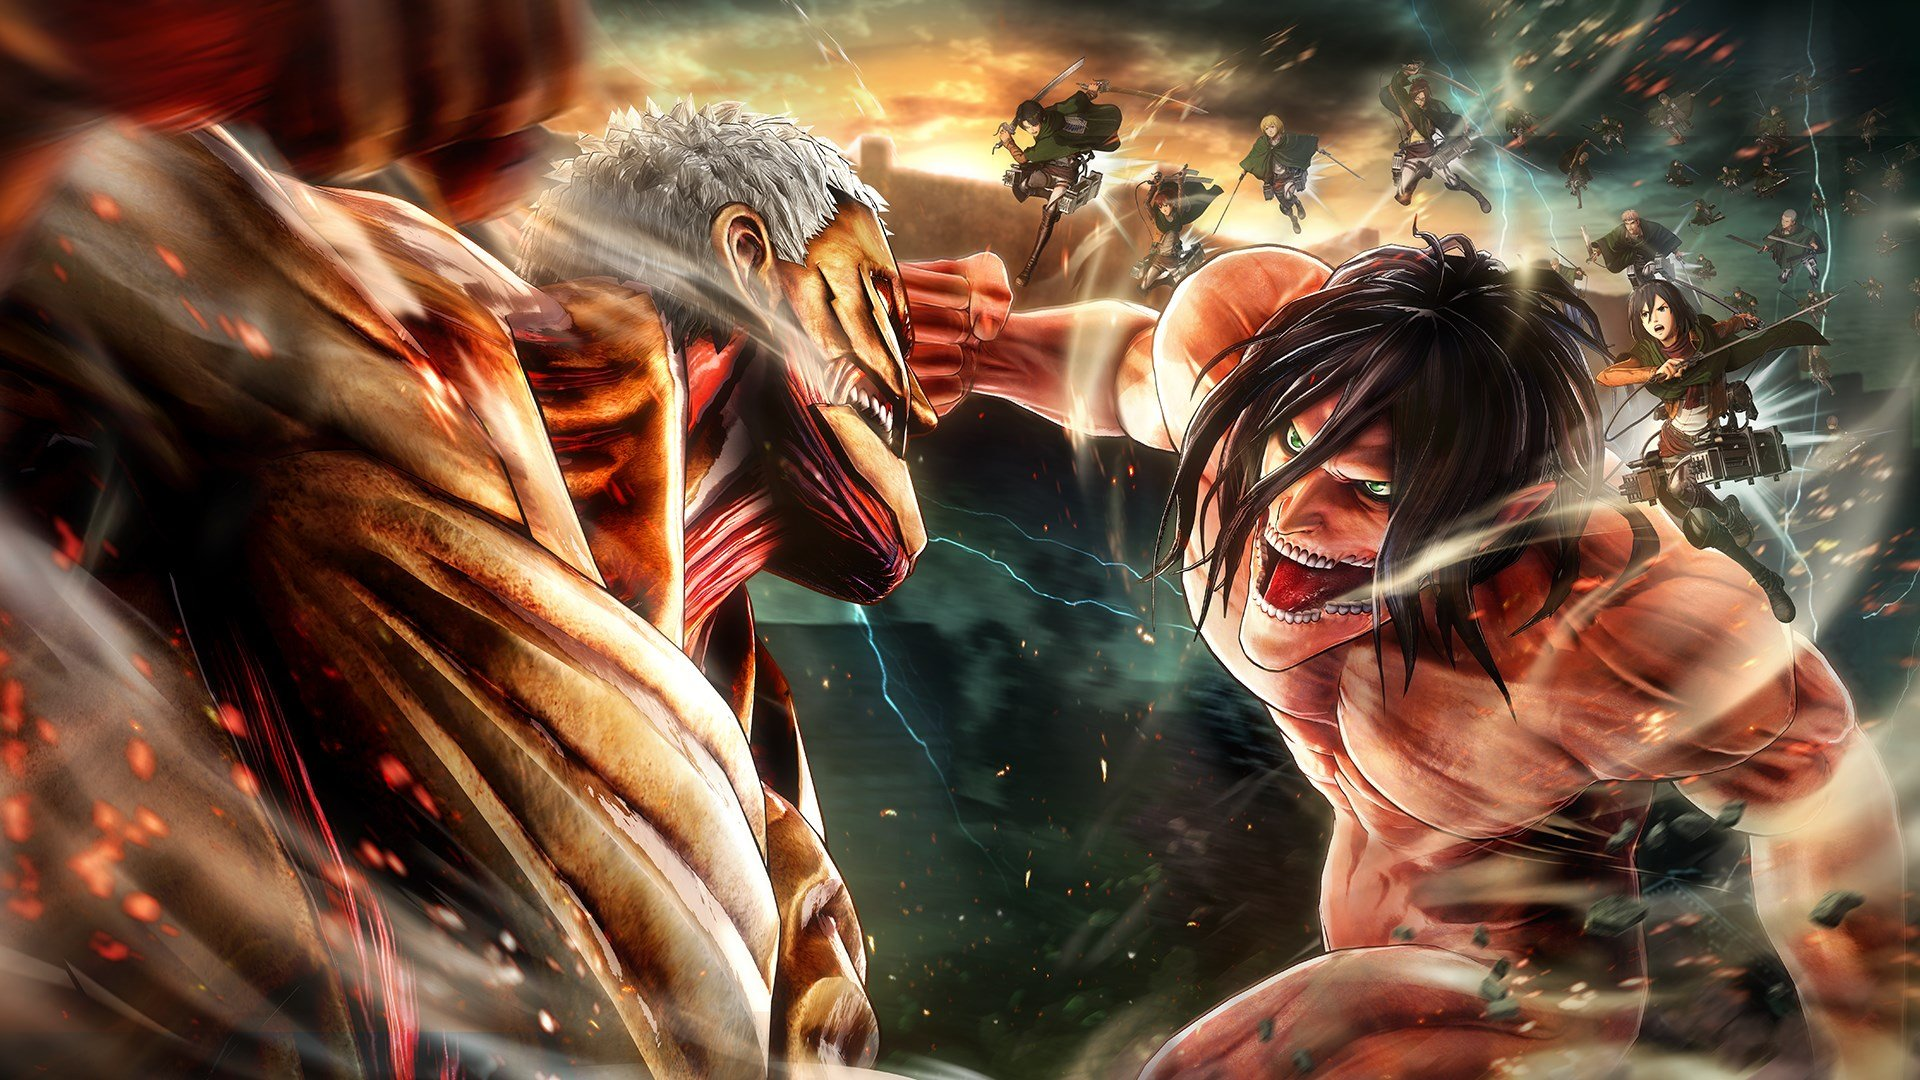 Attack on Titan Season 4 Episode 9 Watch Online with English Subtitles